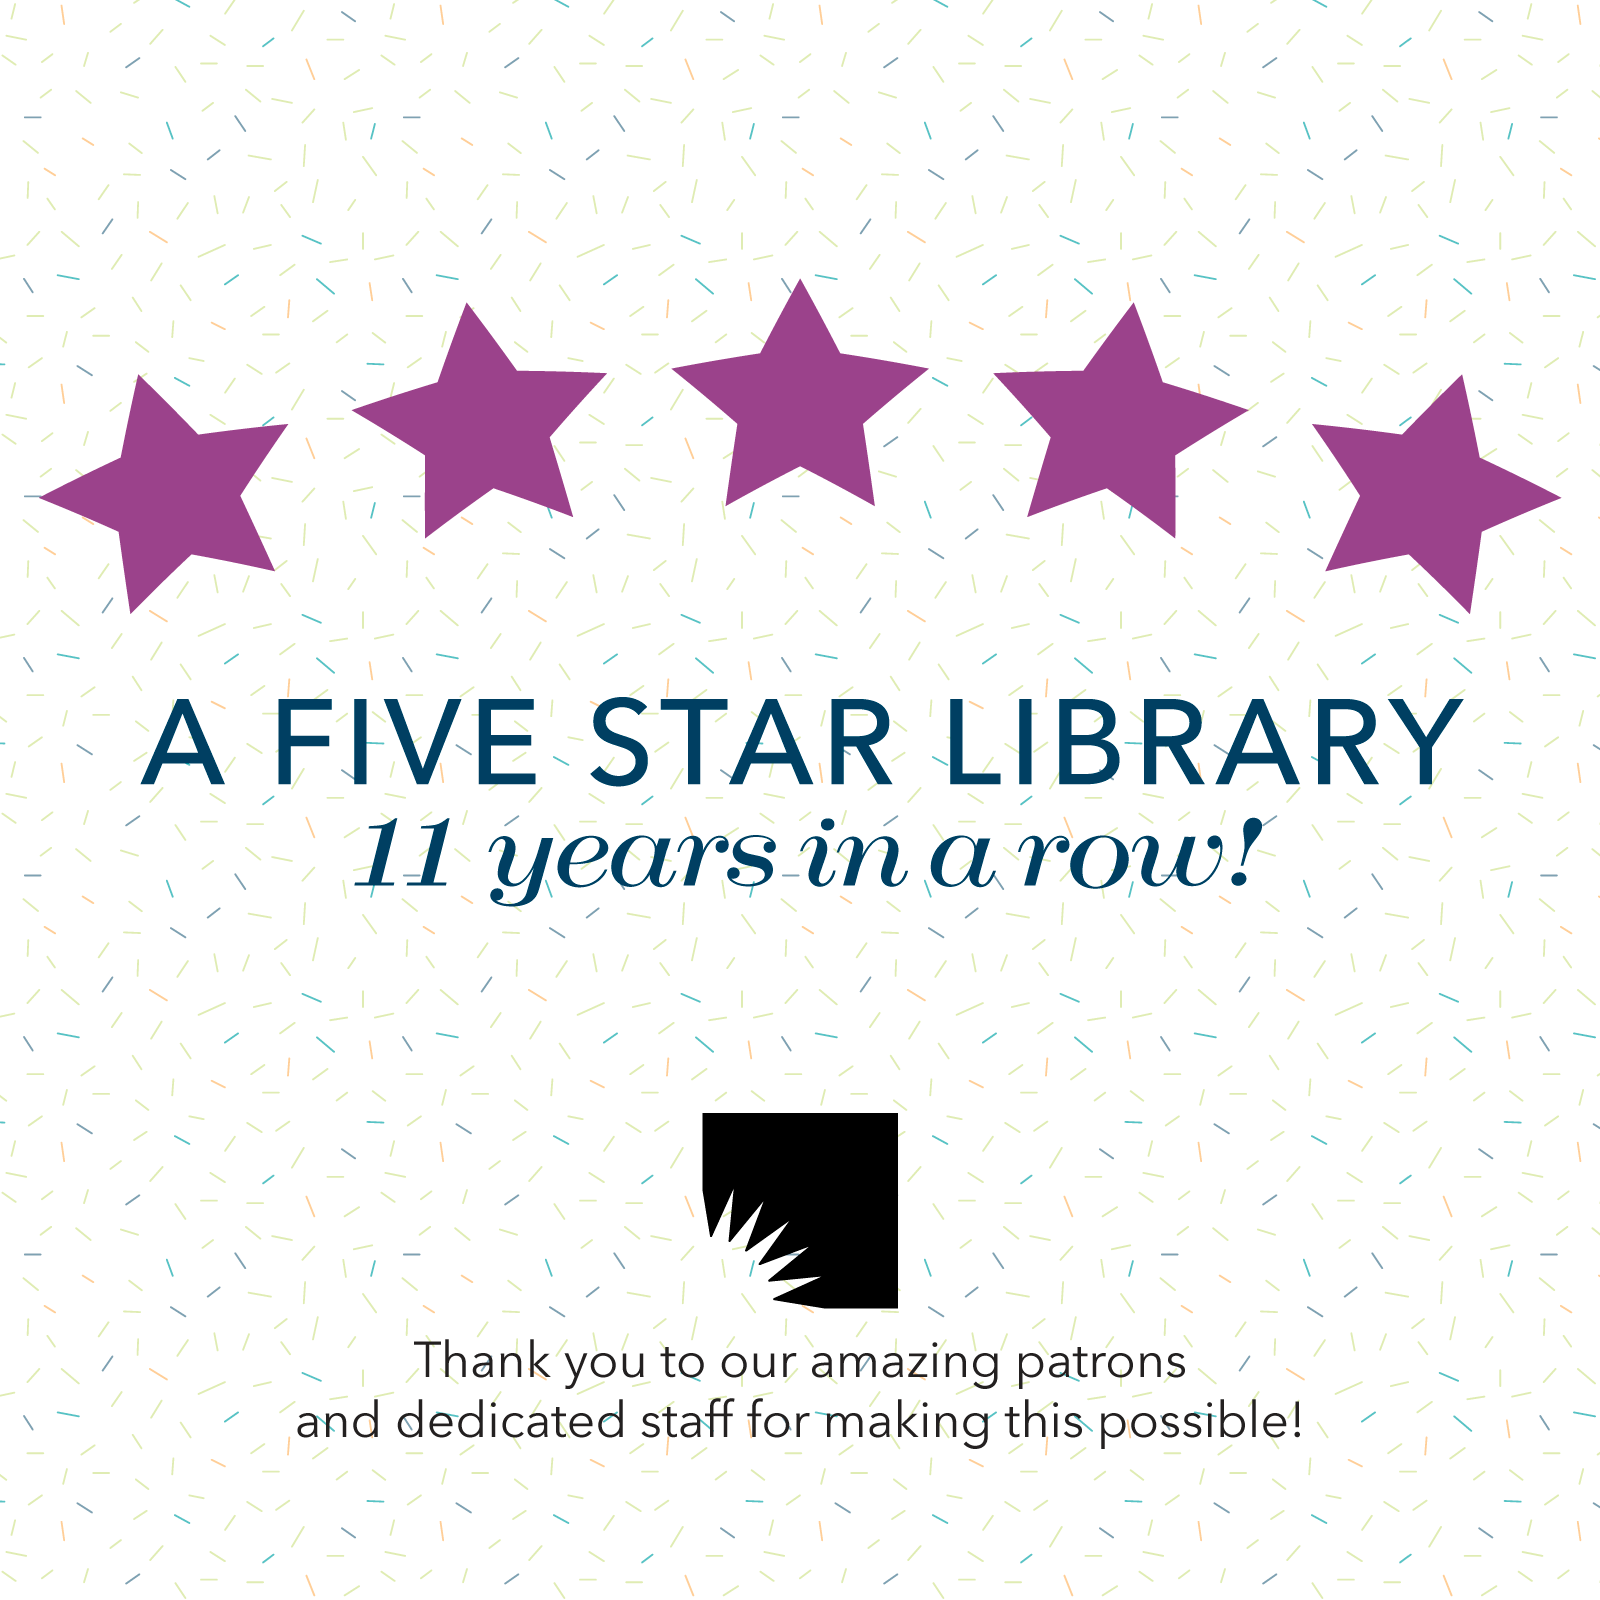 AADL Named Five Star Library by Library Journal